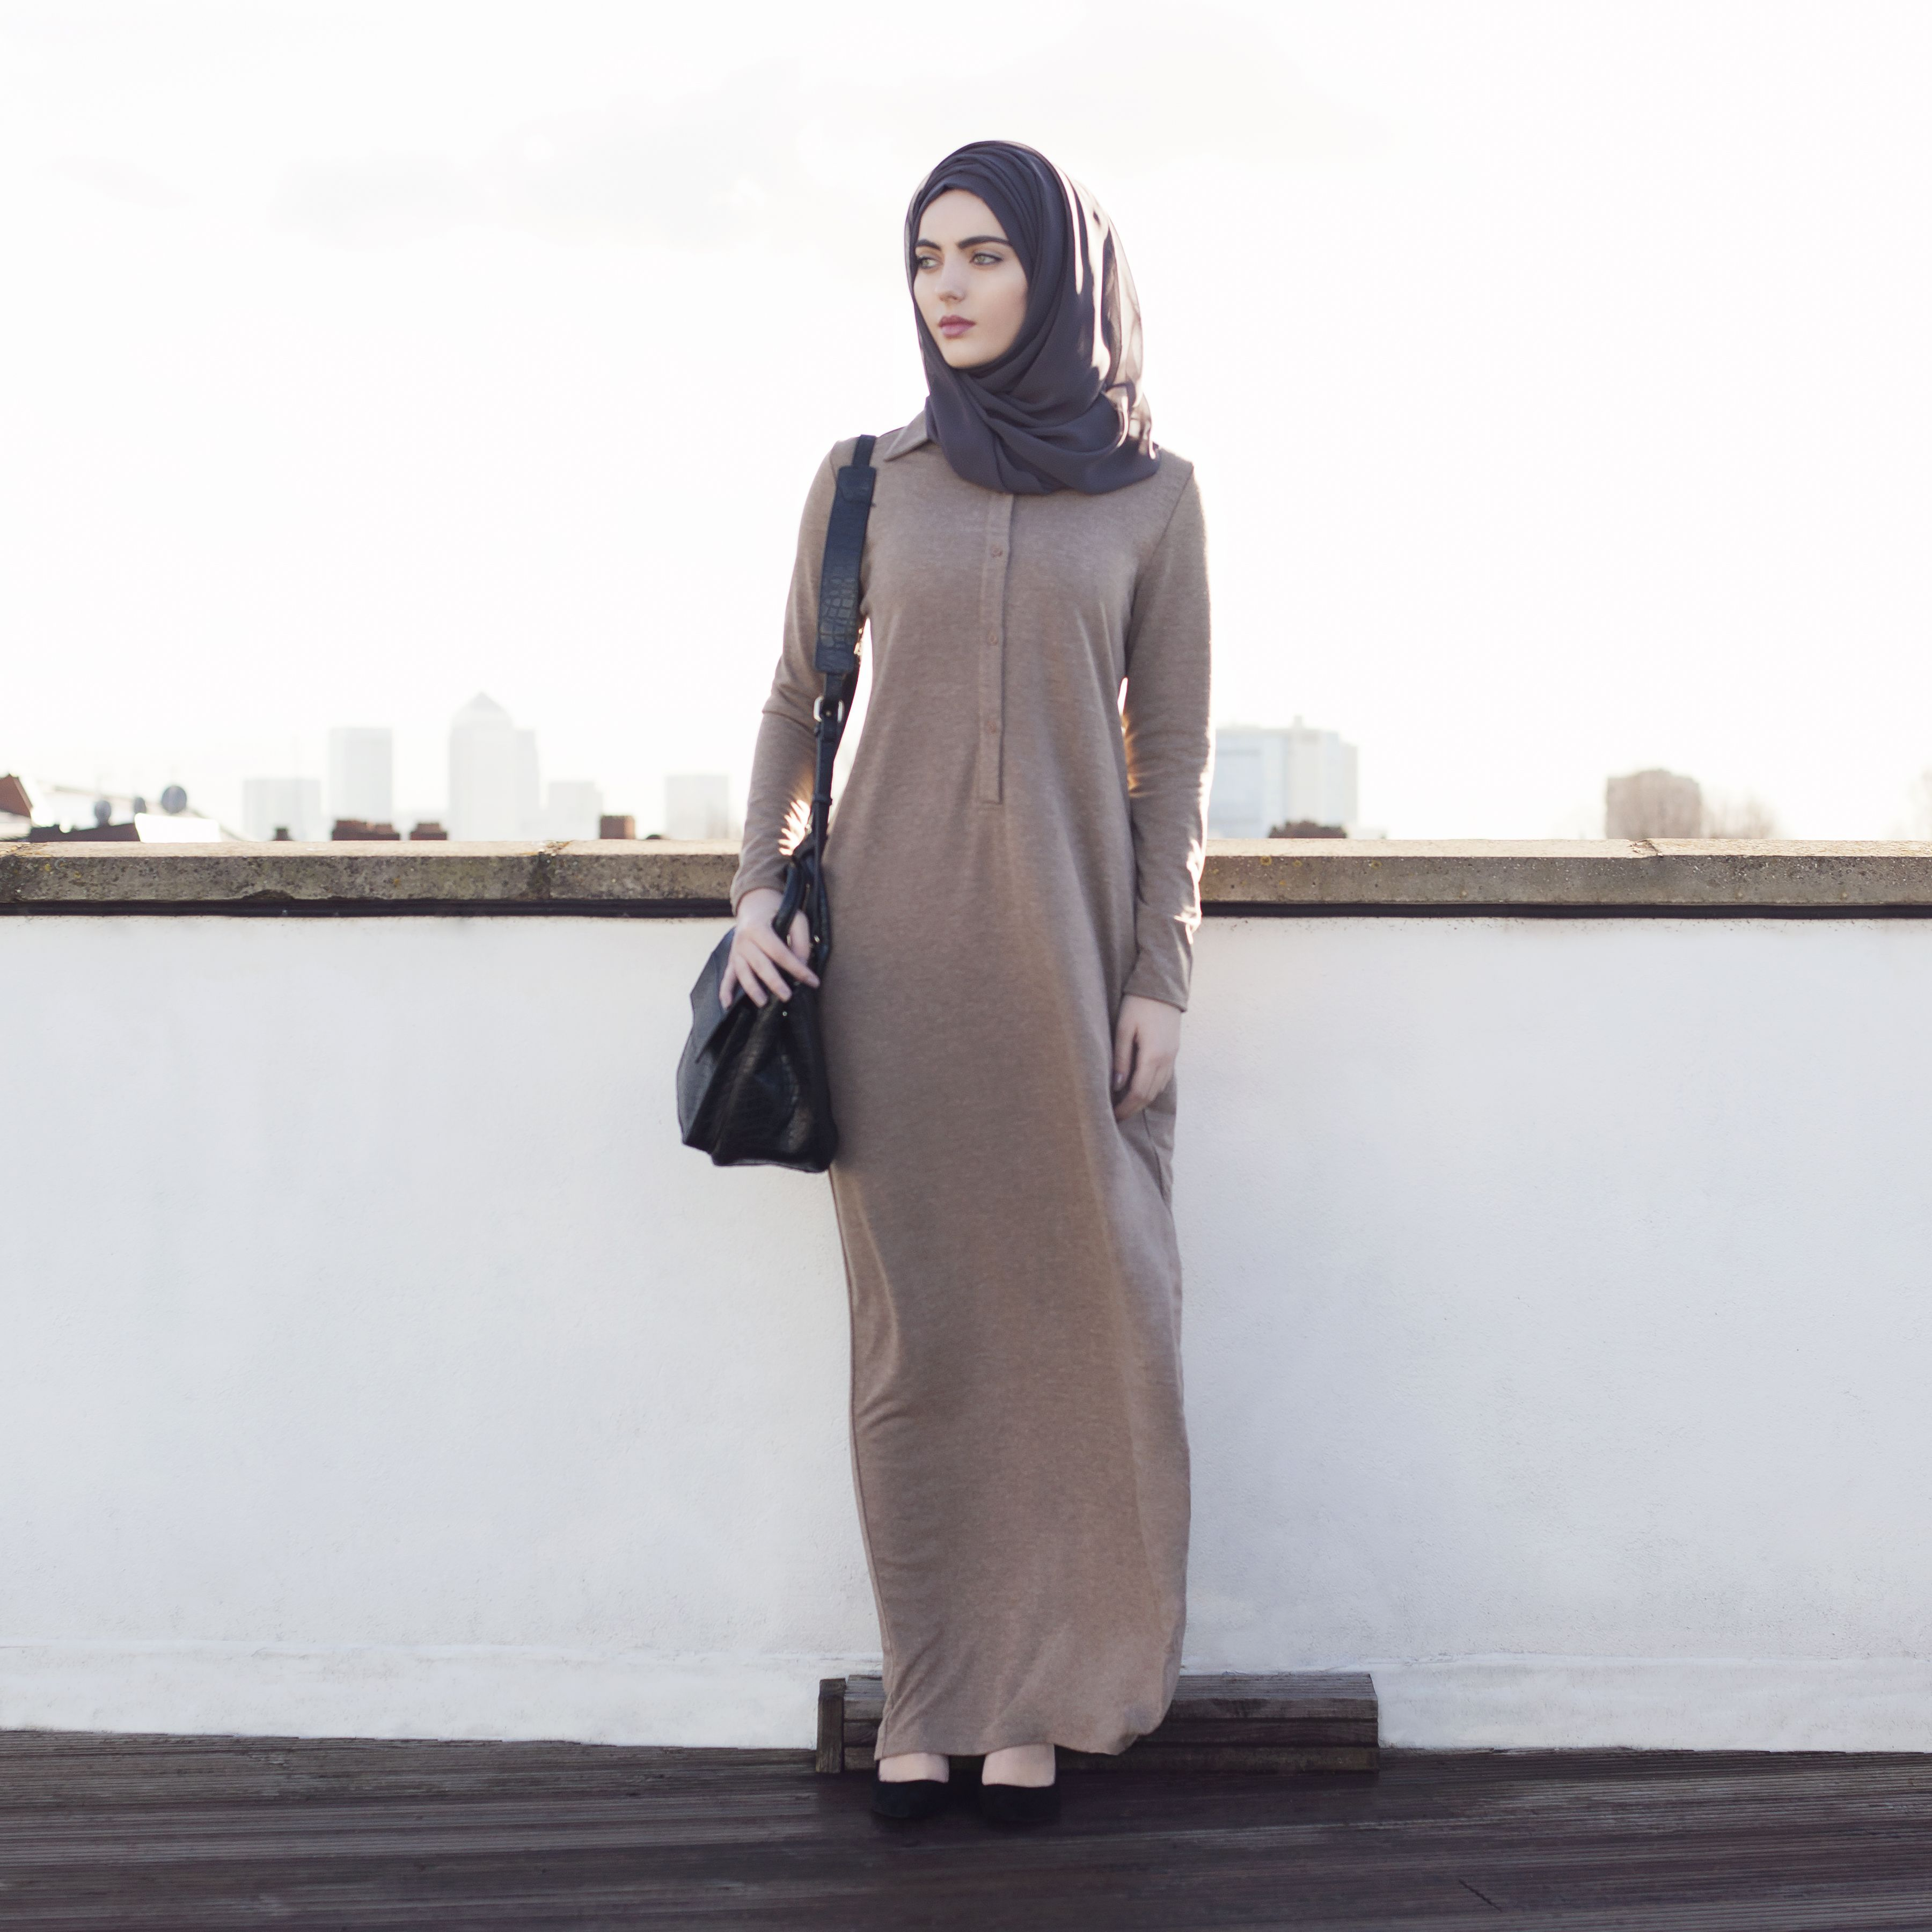 INAYAH | Wheat Textured Fall #Abaya + Charcoal Georgette #Hijab #modestfashion#modesty#modeststreestfashion#hijabfashion#modeststreetstyle#modestabayas#modestdresses www.inayahcollection.com